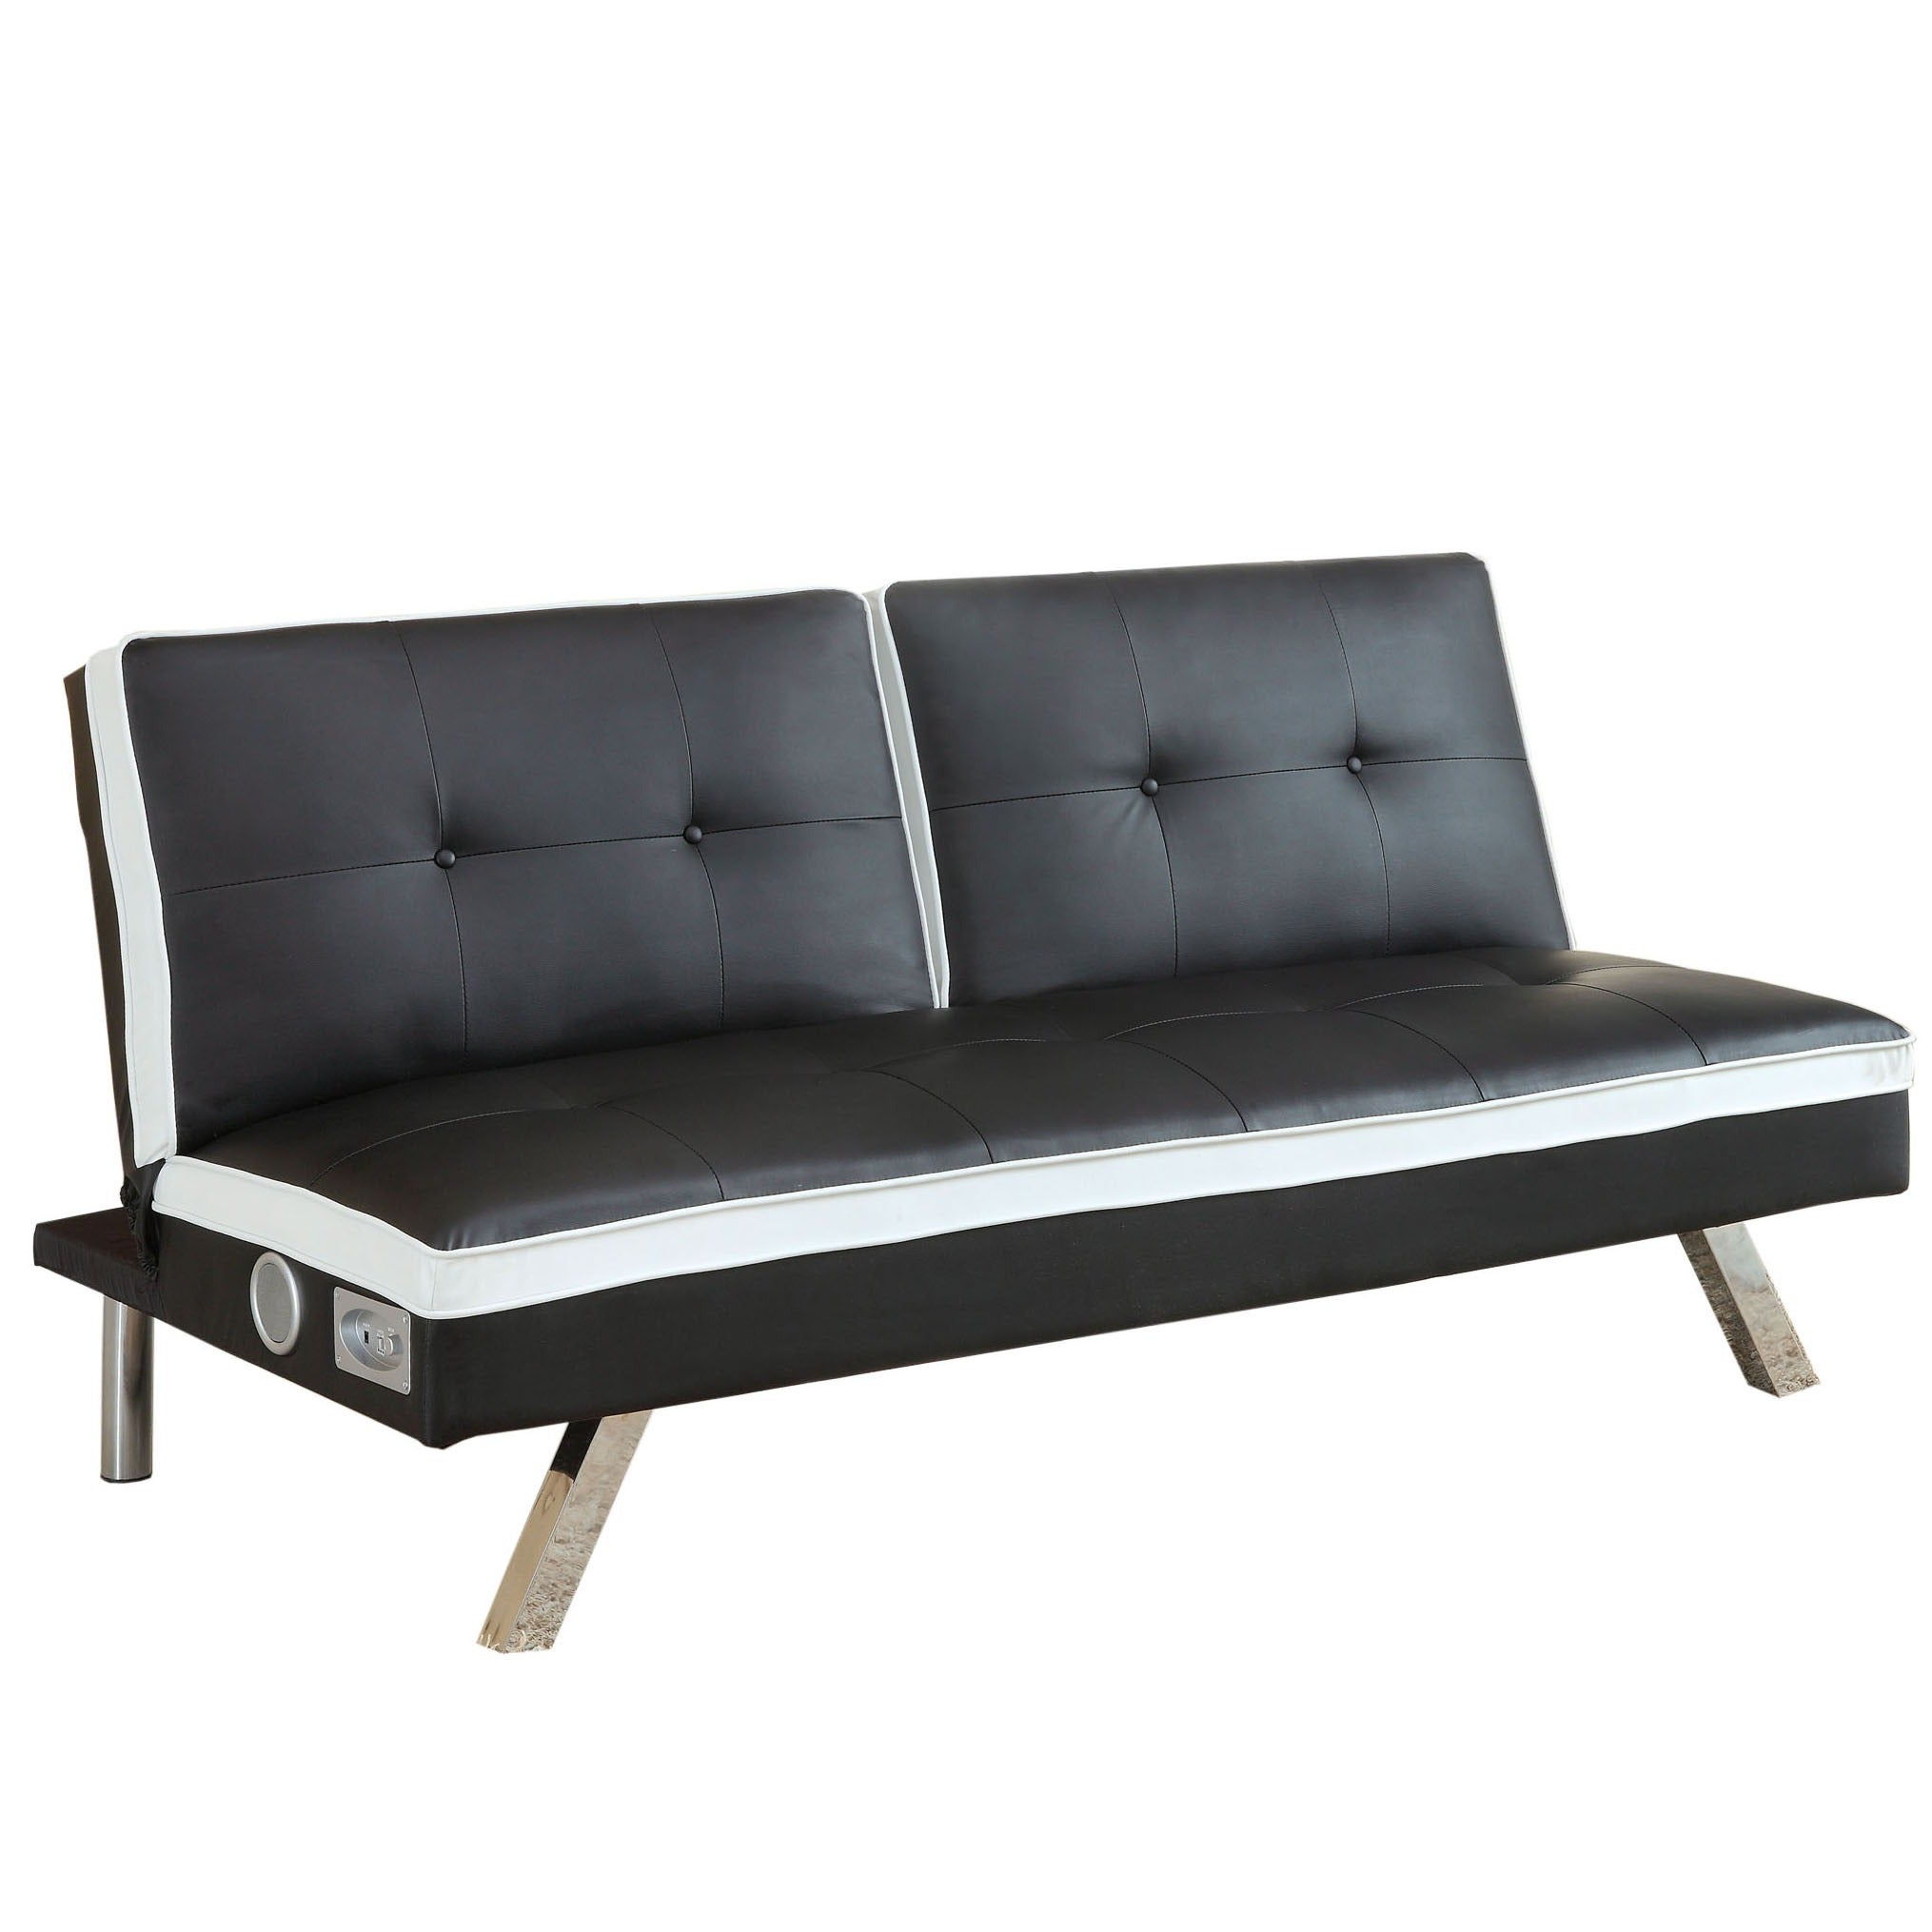 bed futon small design ideas fortable page of orlowski style organic best sofa couch